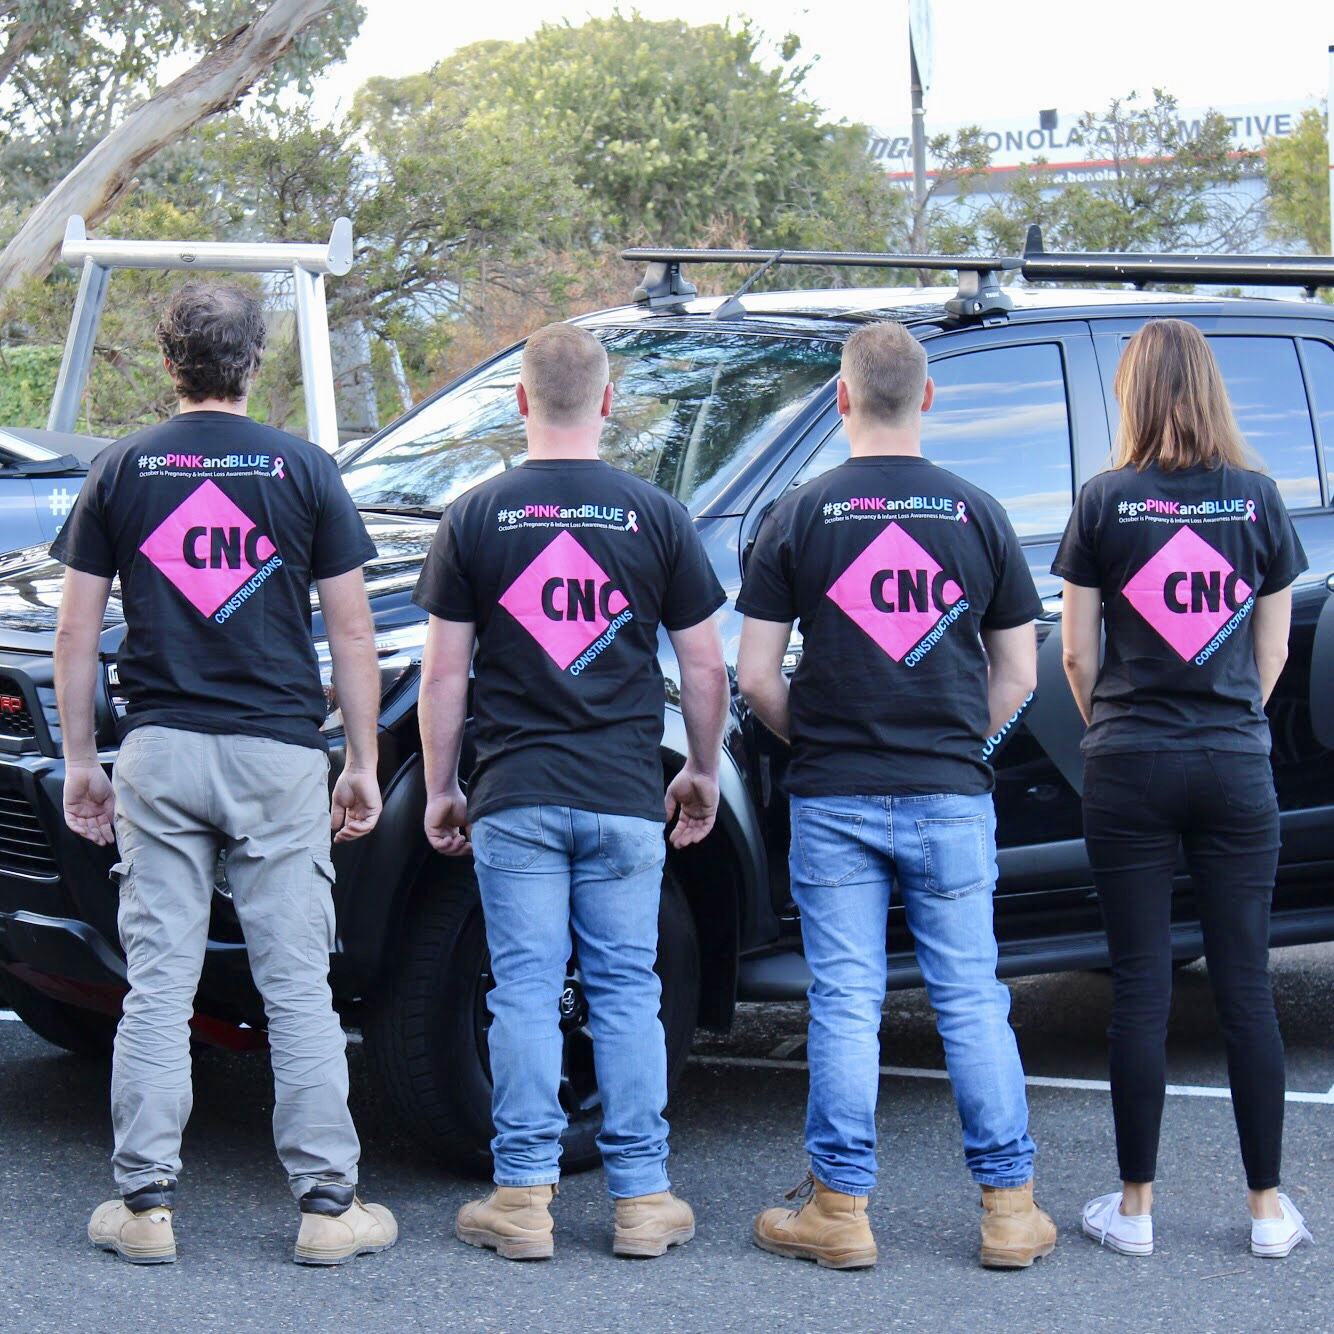 A few members of our team in the PINK & BLUE workwear